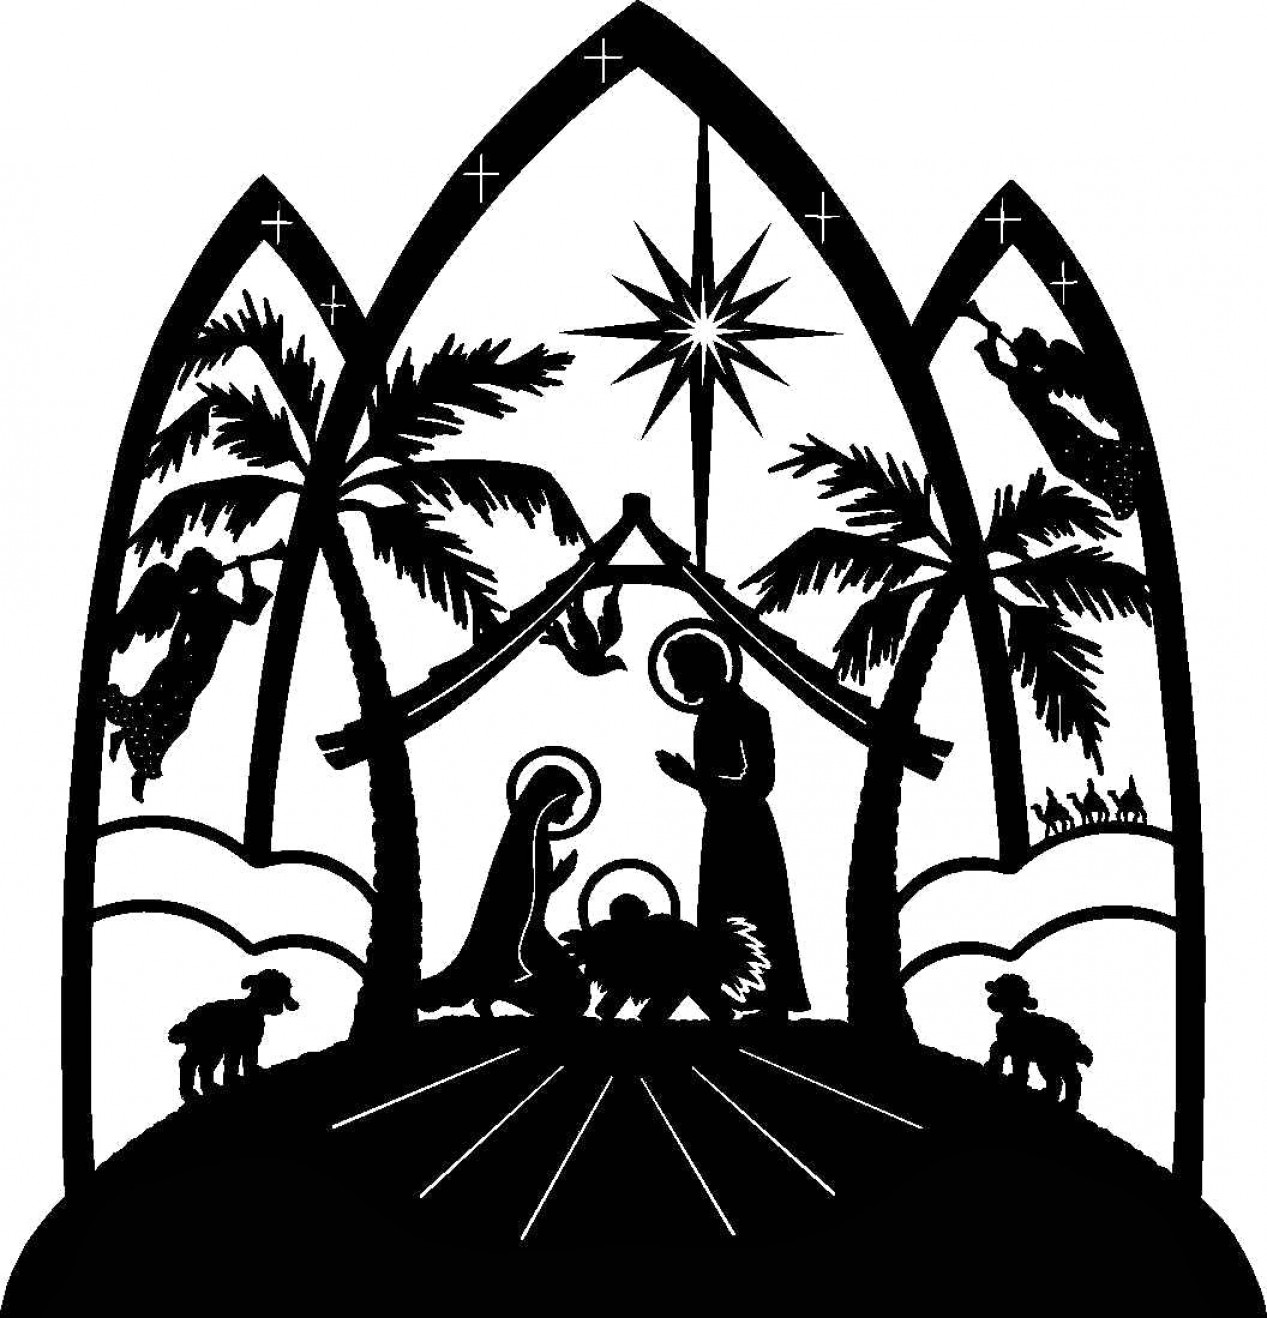 Free christmas clipart manger scene. Nativity collection cute clip